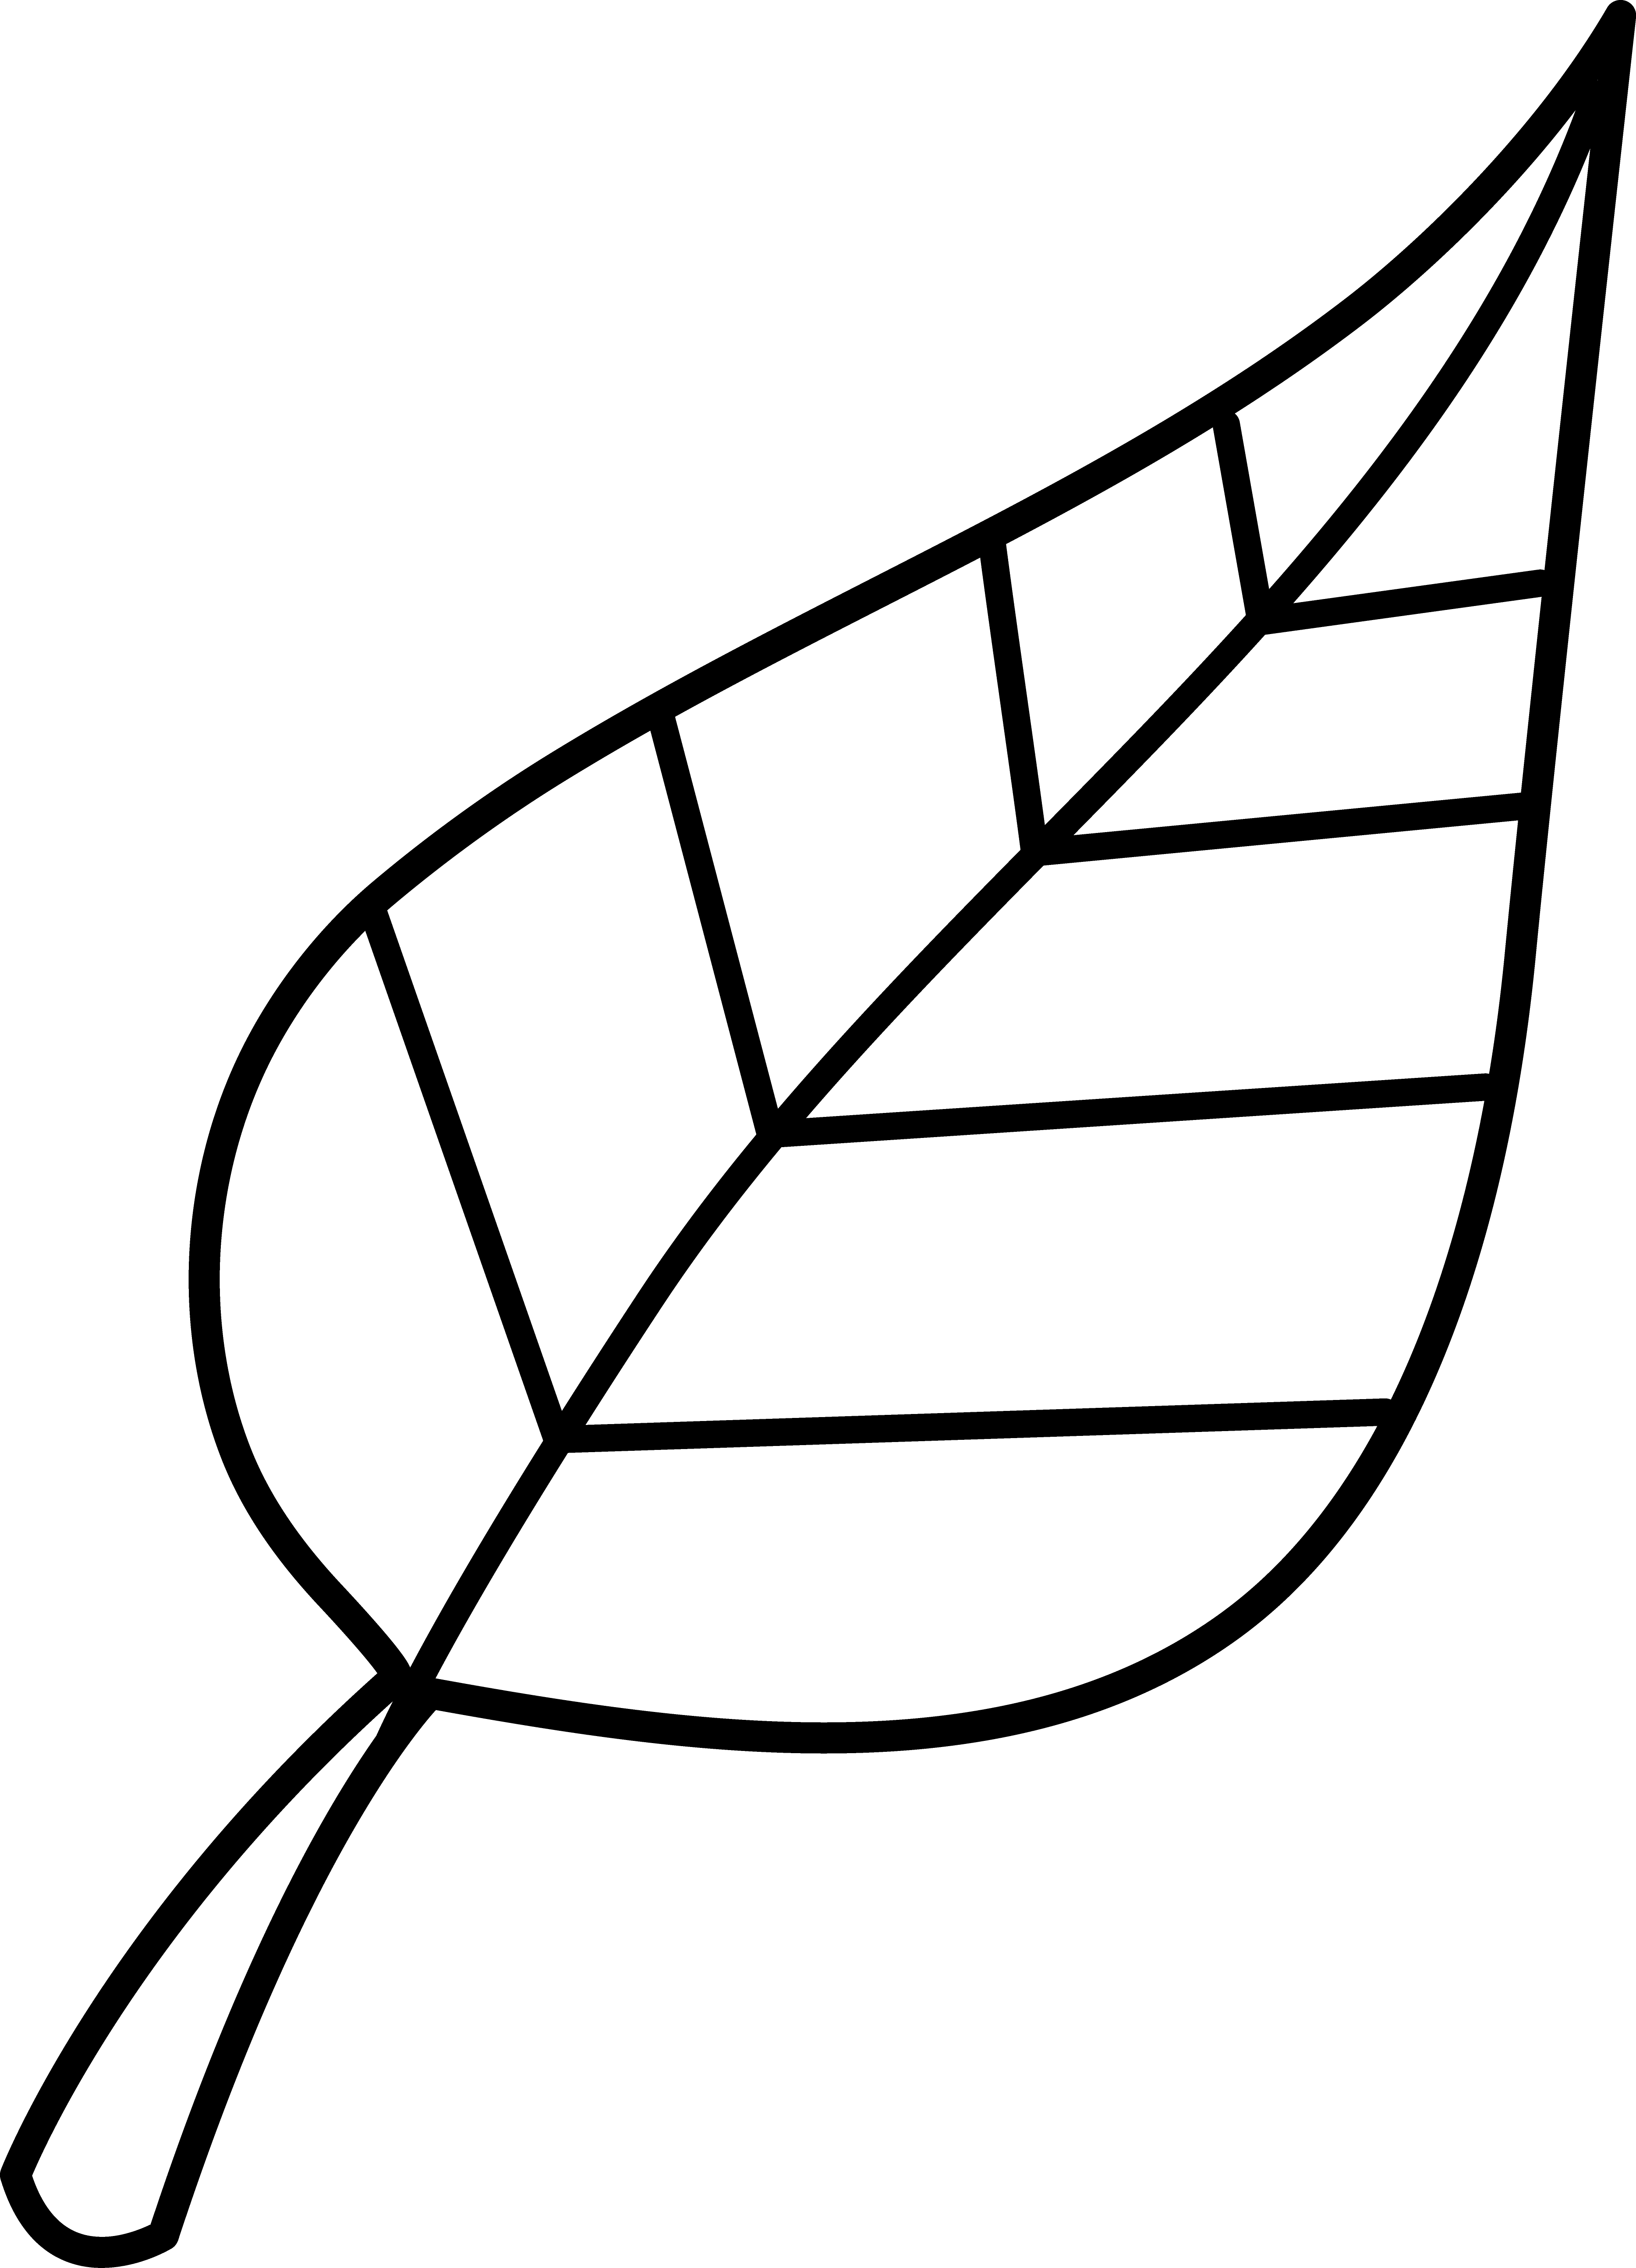 Lemon with leaf clipart black and white vector black and white stock Pin by Emily Clark on Its in the Details | Black, white drawing ... vector black and white stock